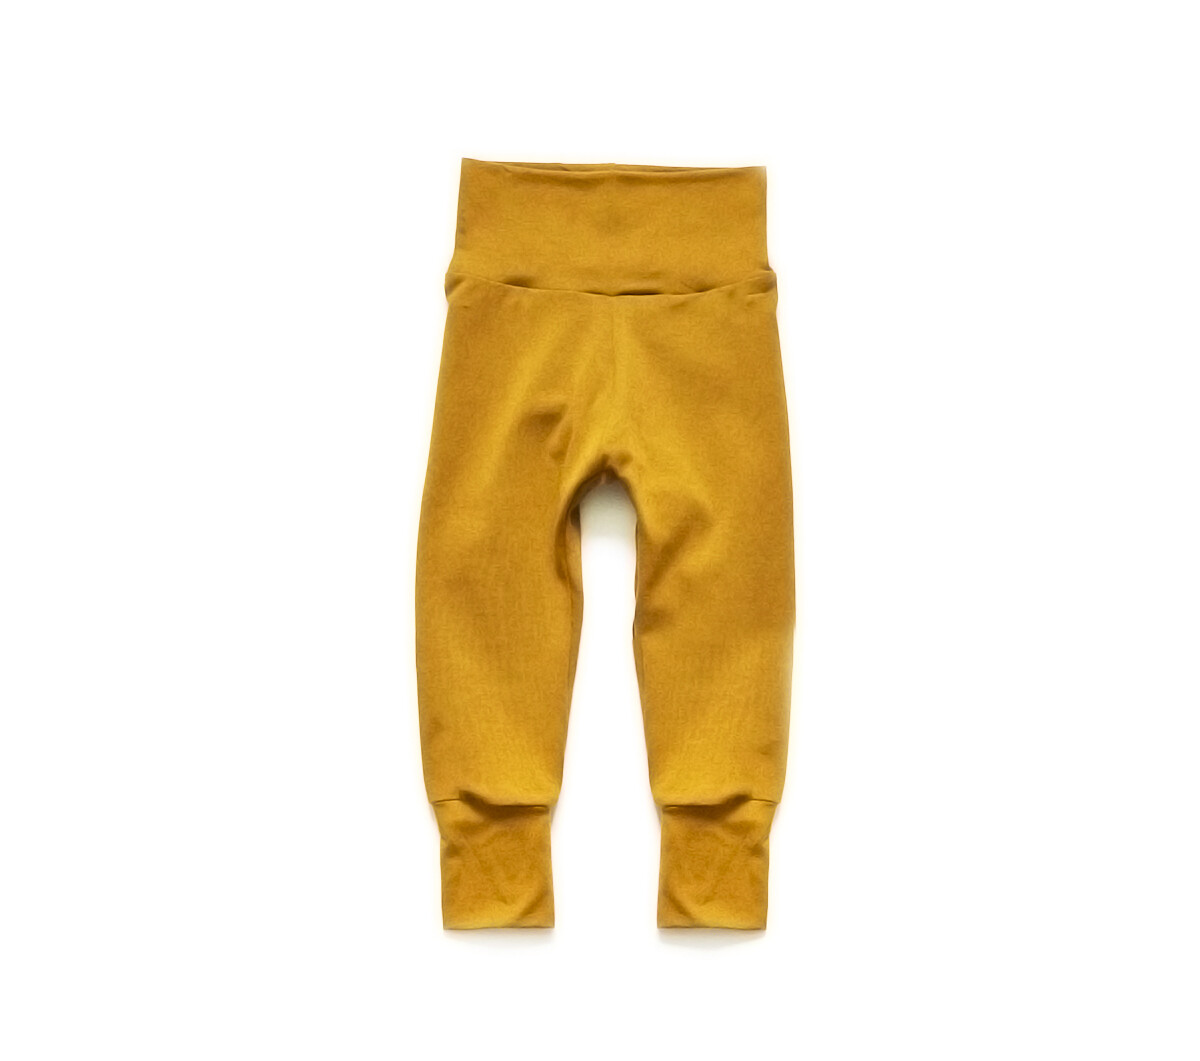 Little Sprout Pants™ in Harvest Gold | Grow With Me Leggings - Cotton